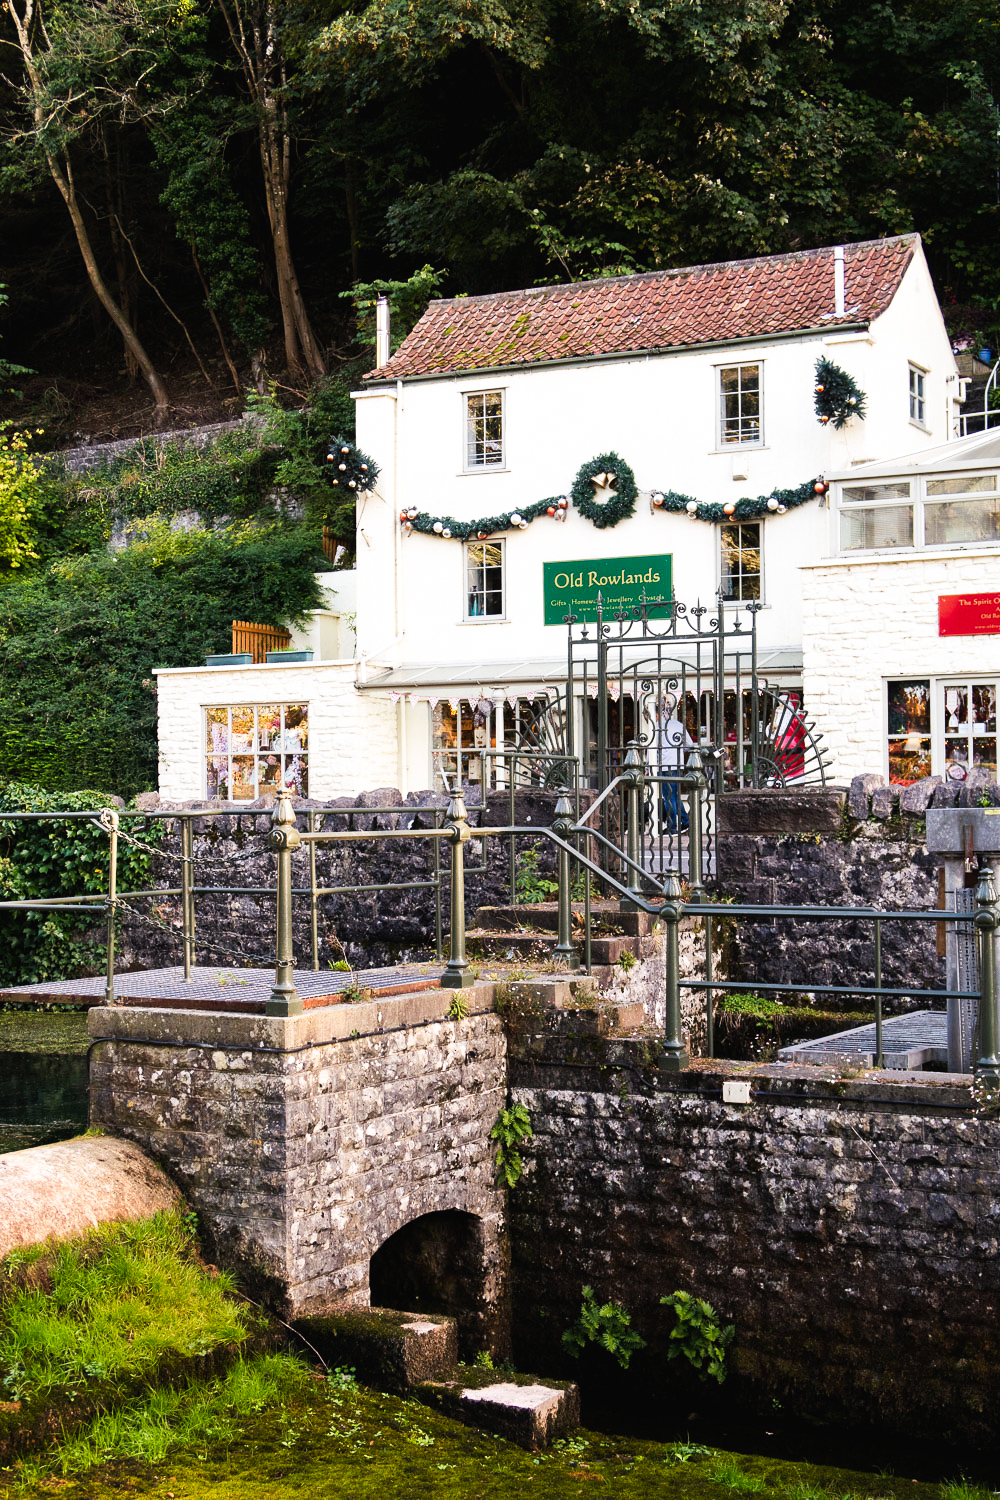 The village of Cheddar Gorge in Somerset, England is where the famous cheese comes from | A Day in Cheddar with The Cheddar Gorge Cheese Company | Mondomulia